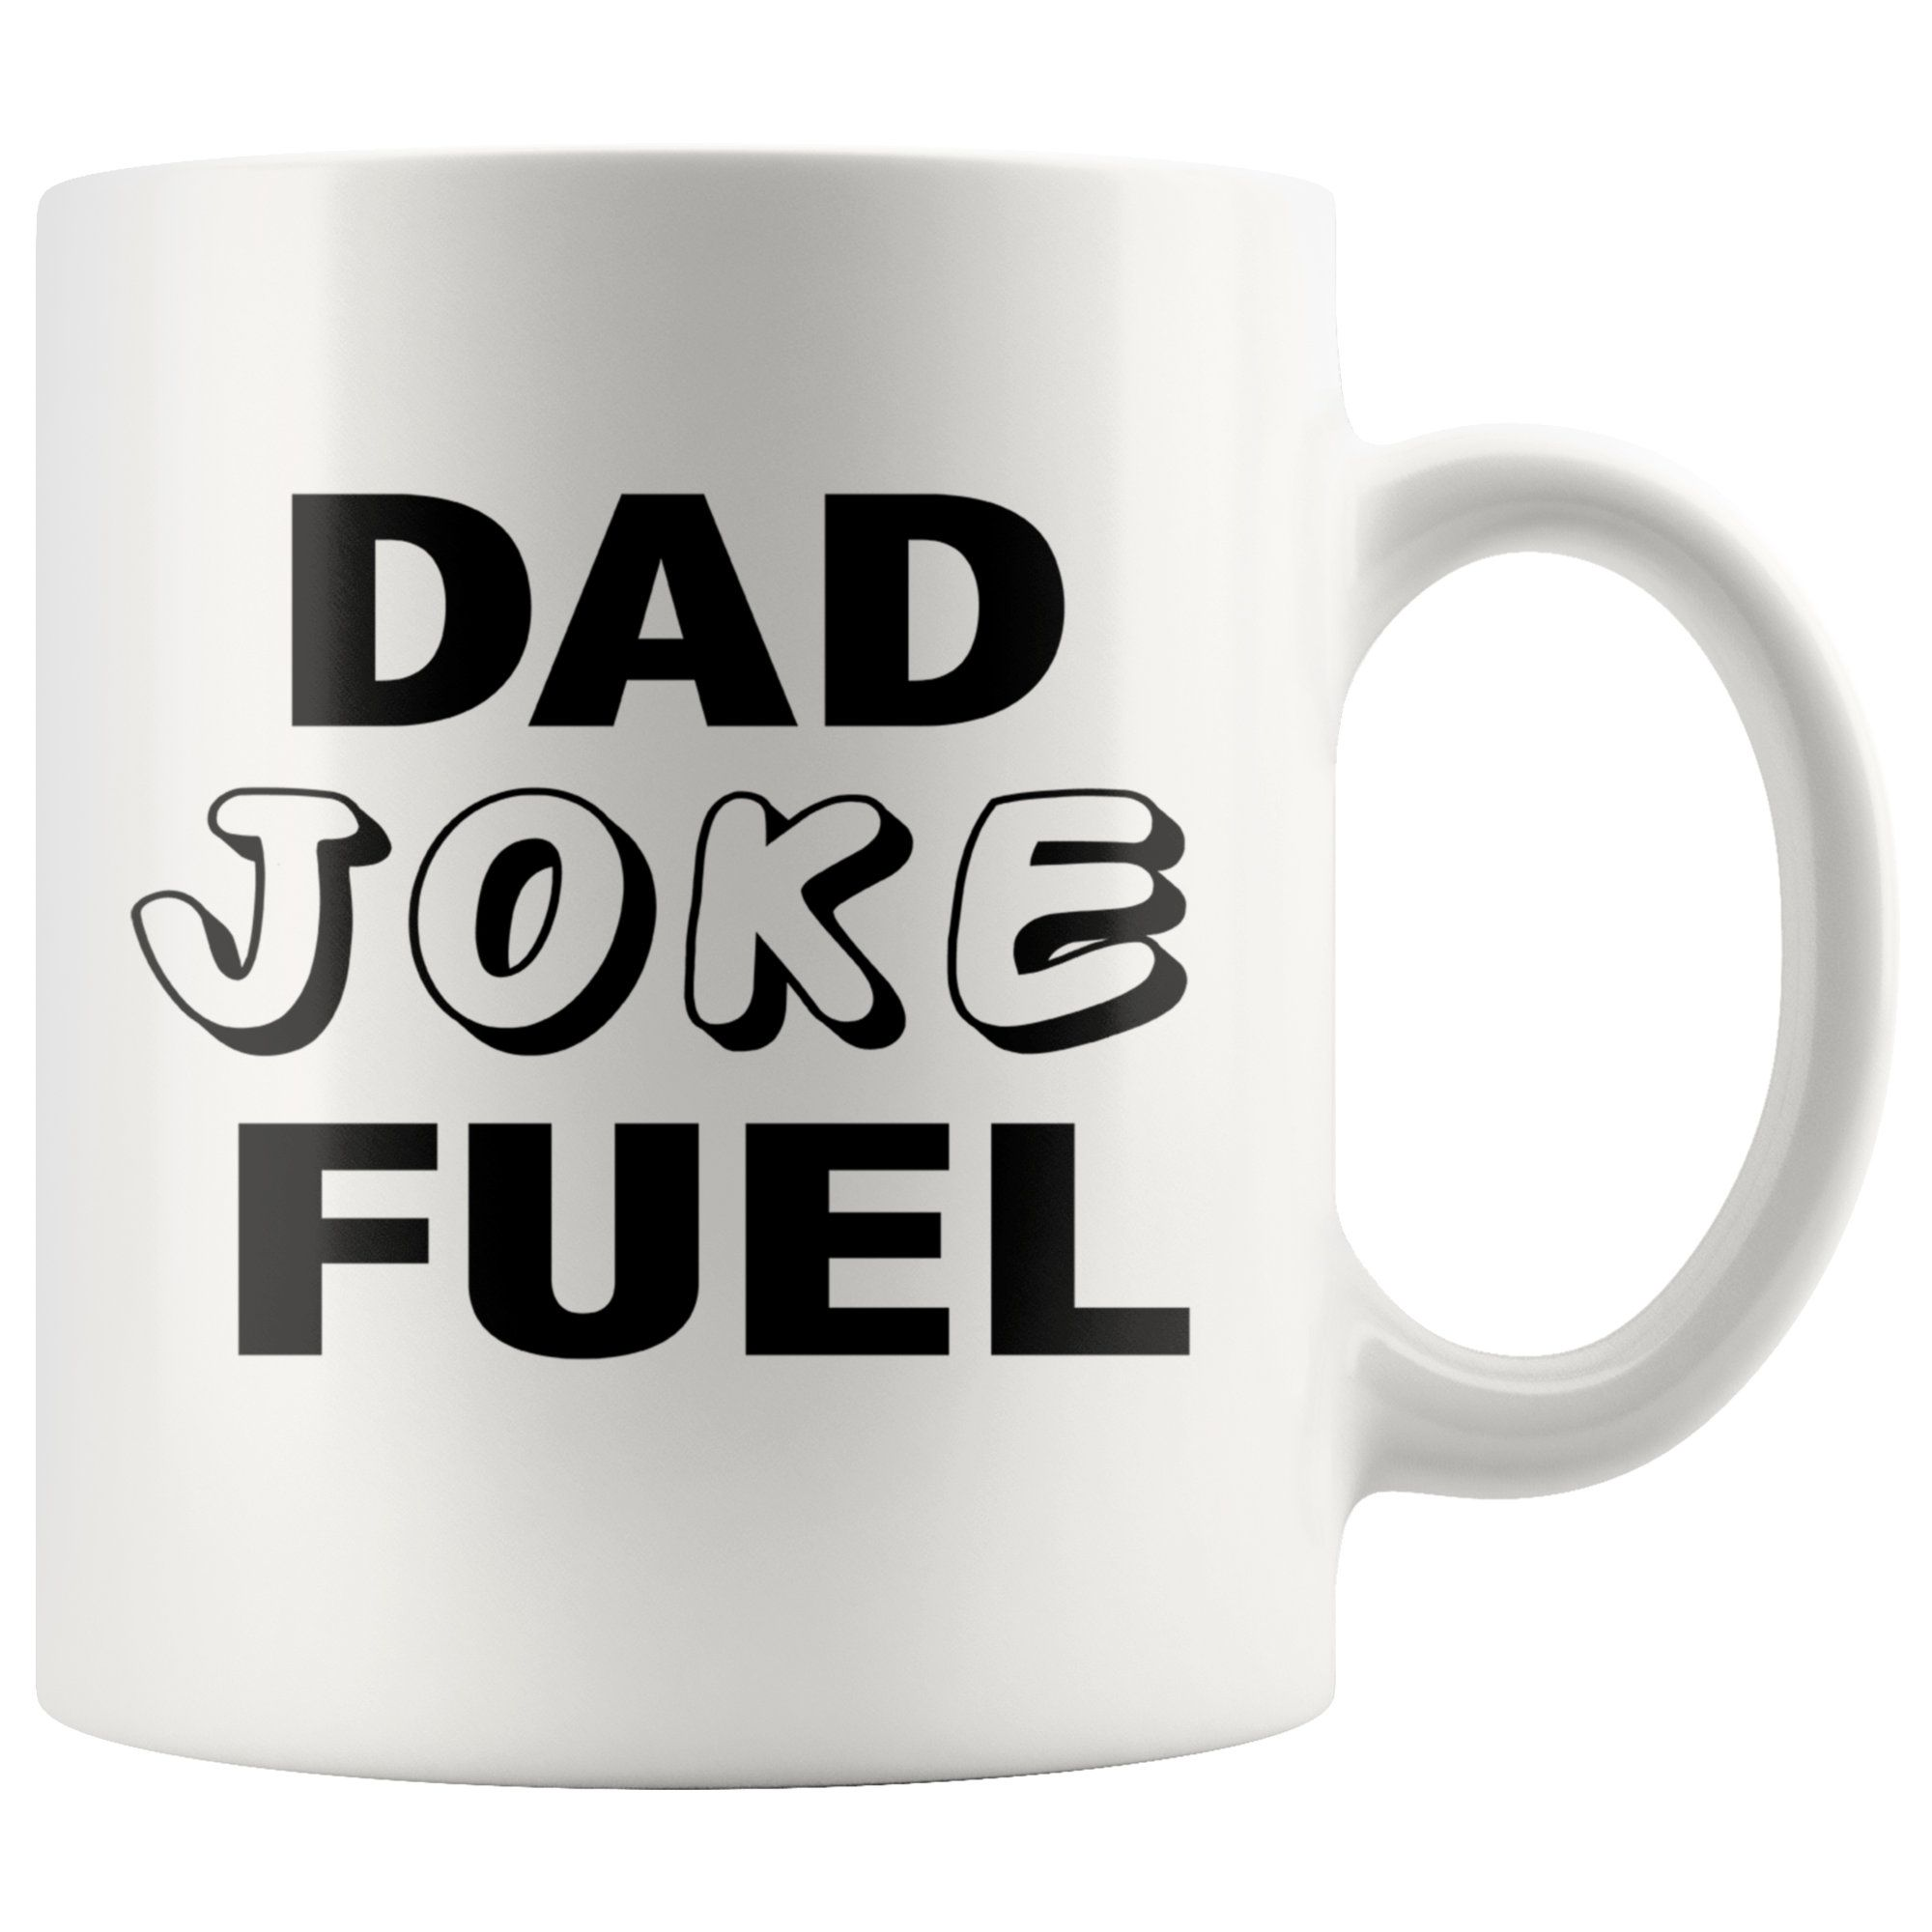 Dad Joke Fuel White Mug Funny Father's Day Gift, Funny